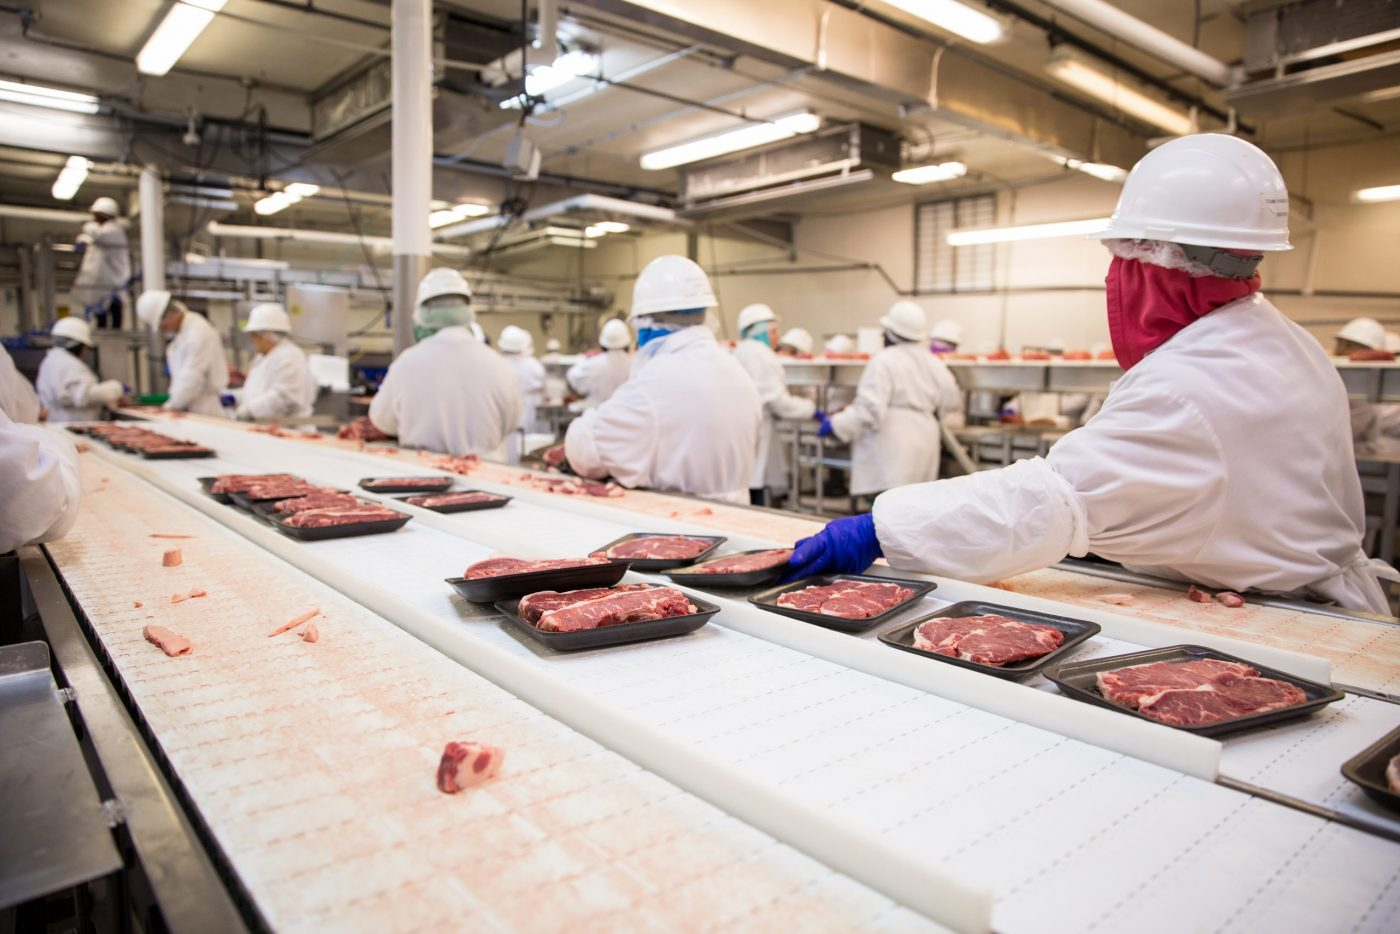 Workers handle meat organizing packing shipping loading at factory plant